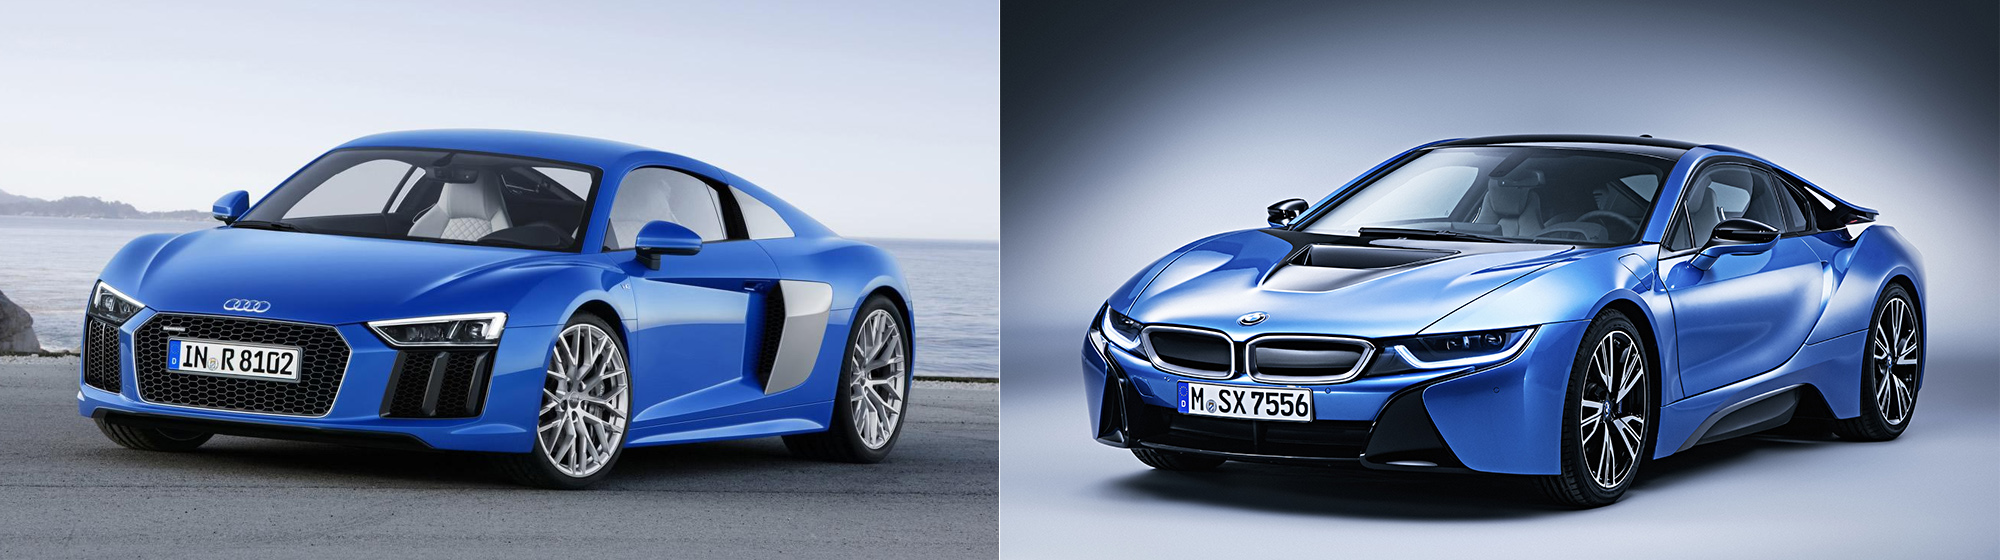 Which Would You Rather Have Bmw I8 Or Audi R8 Mkii